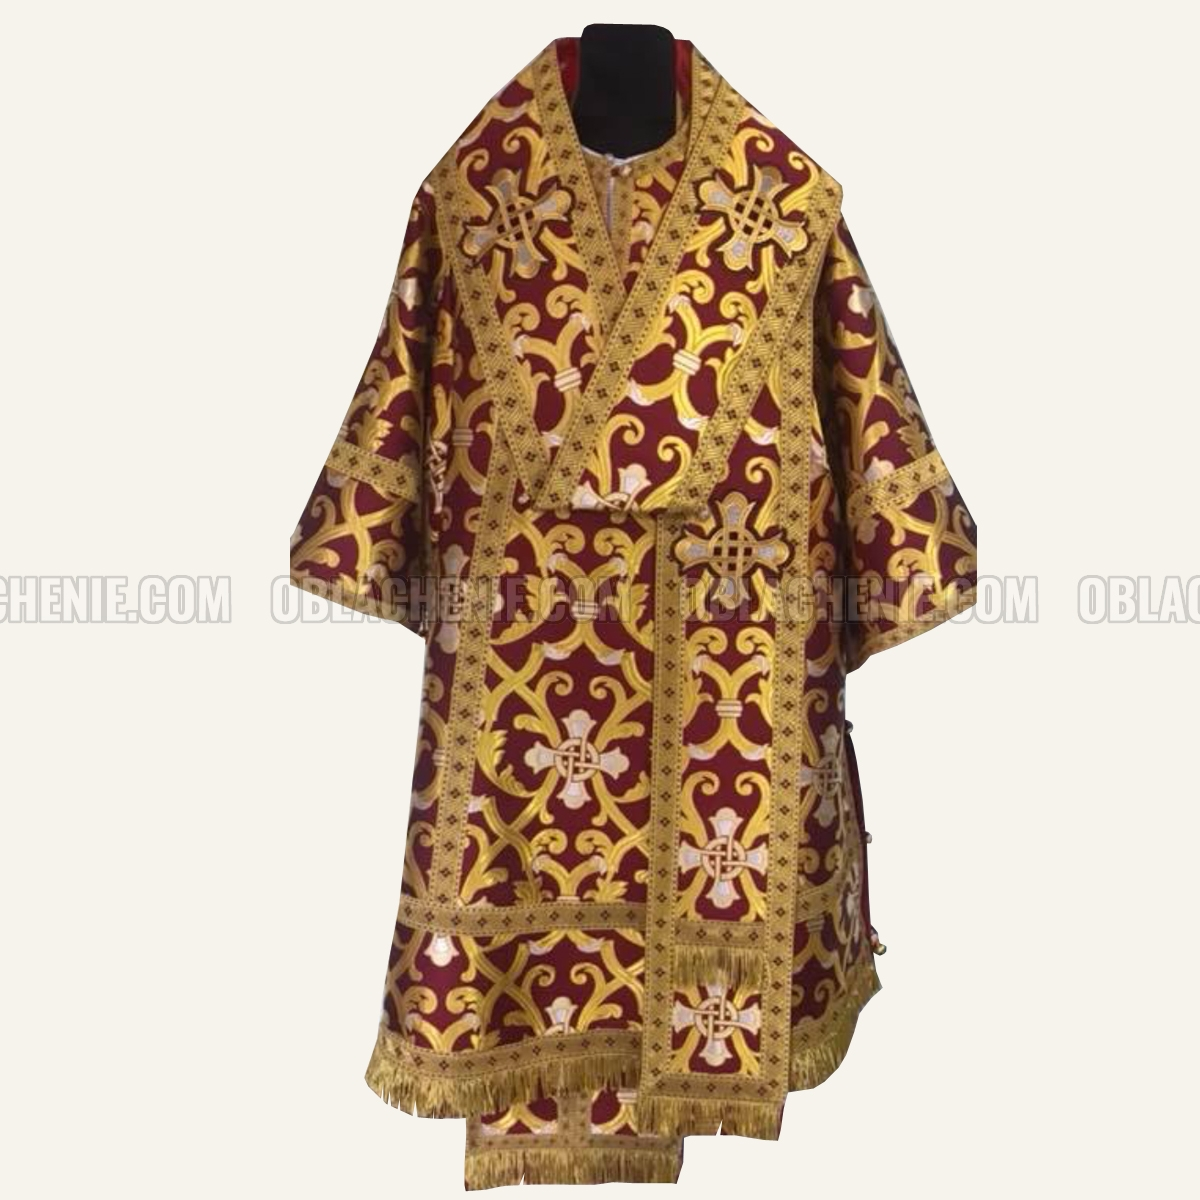 Bishop's vestments 10280